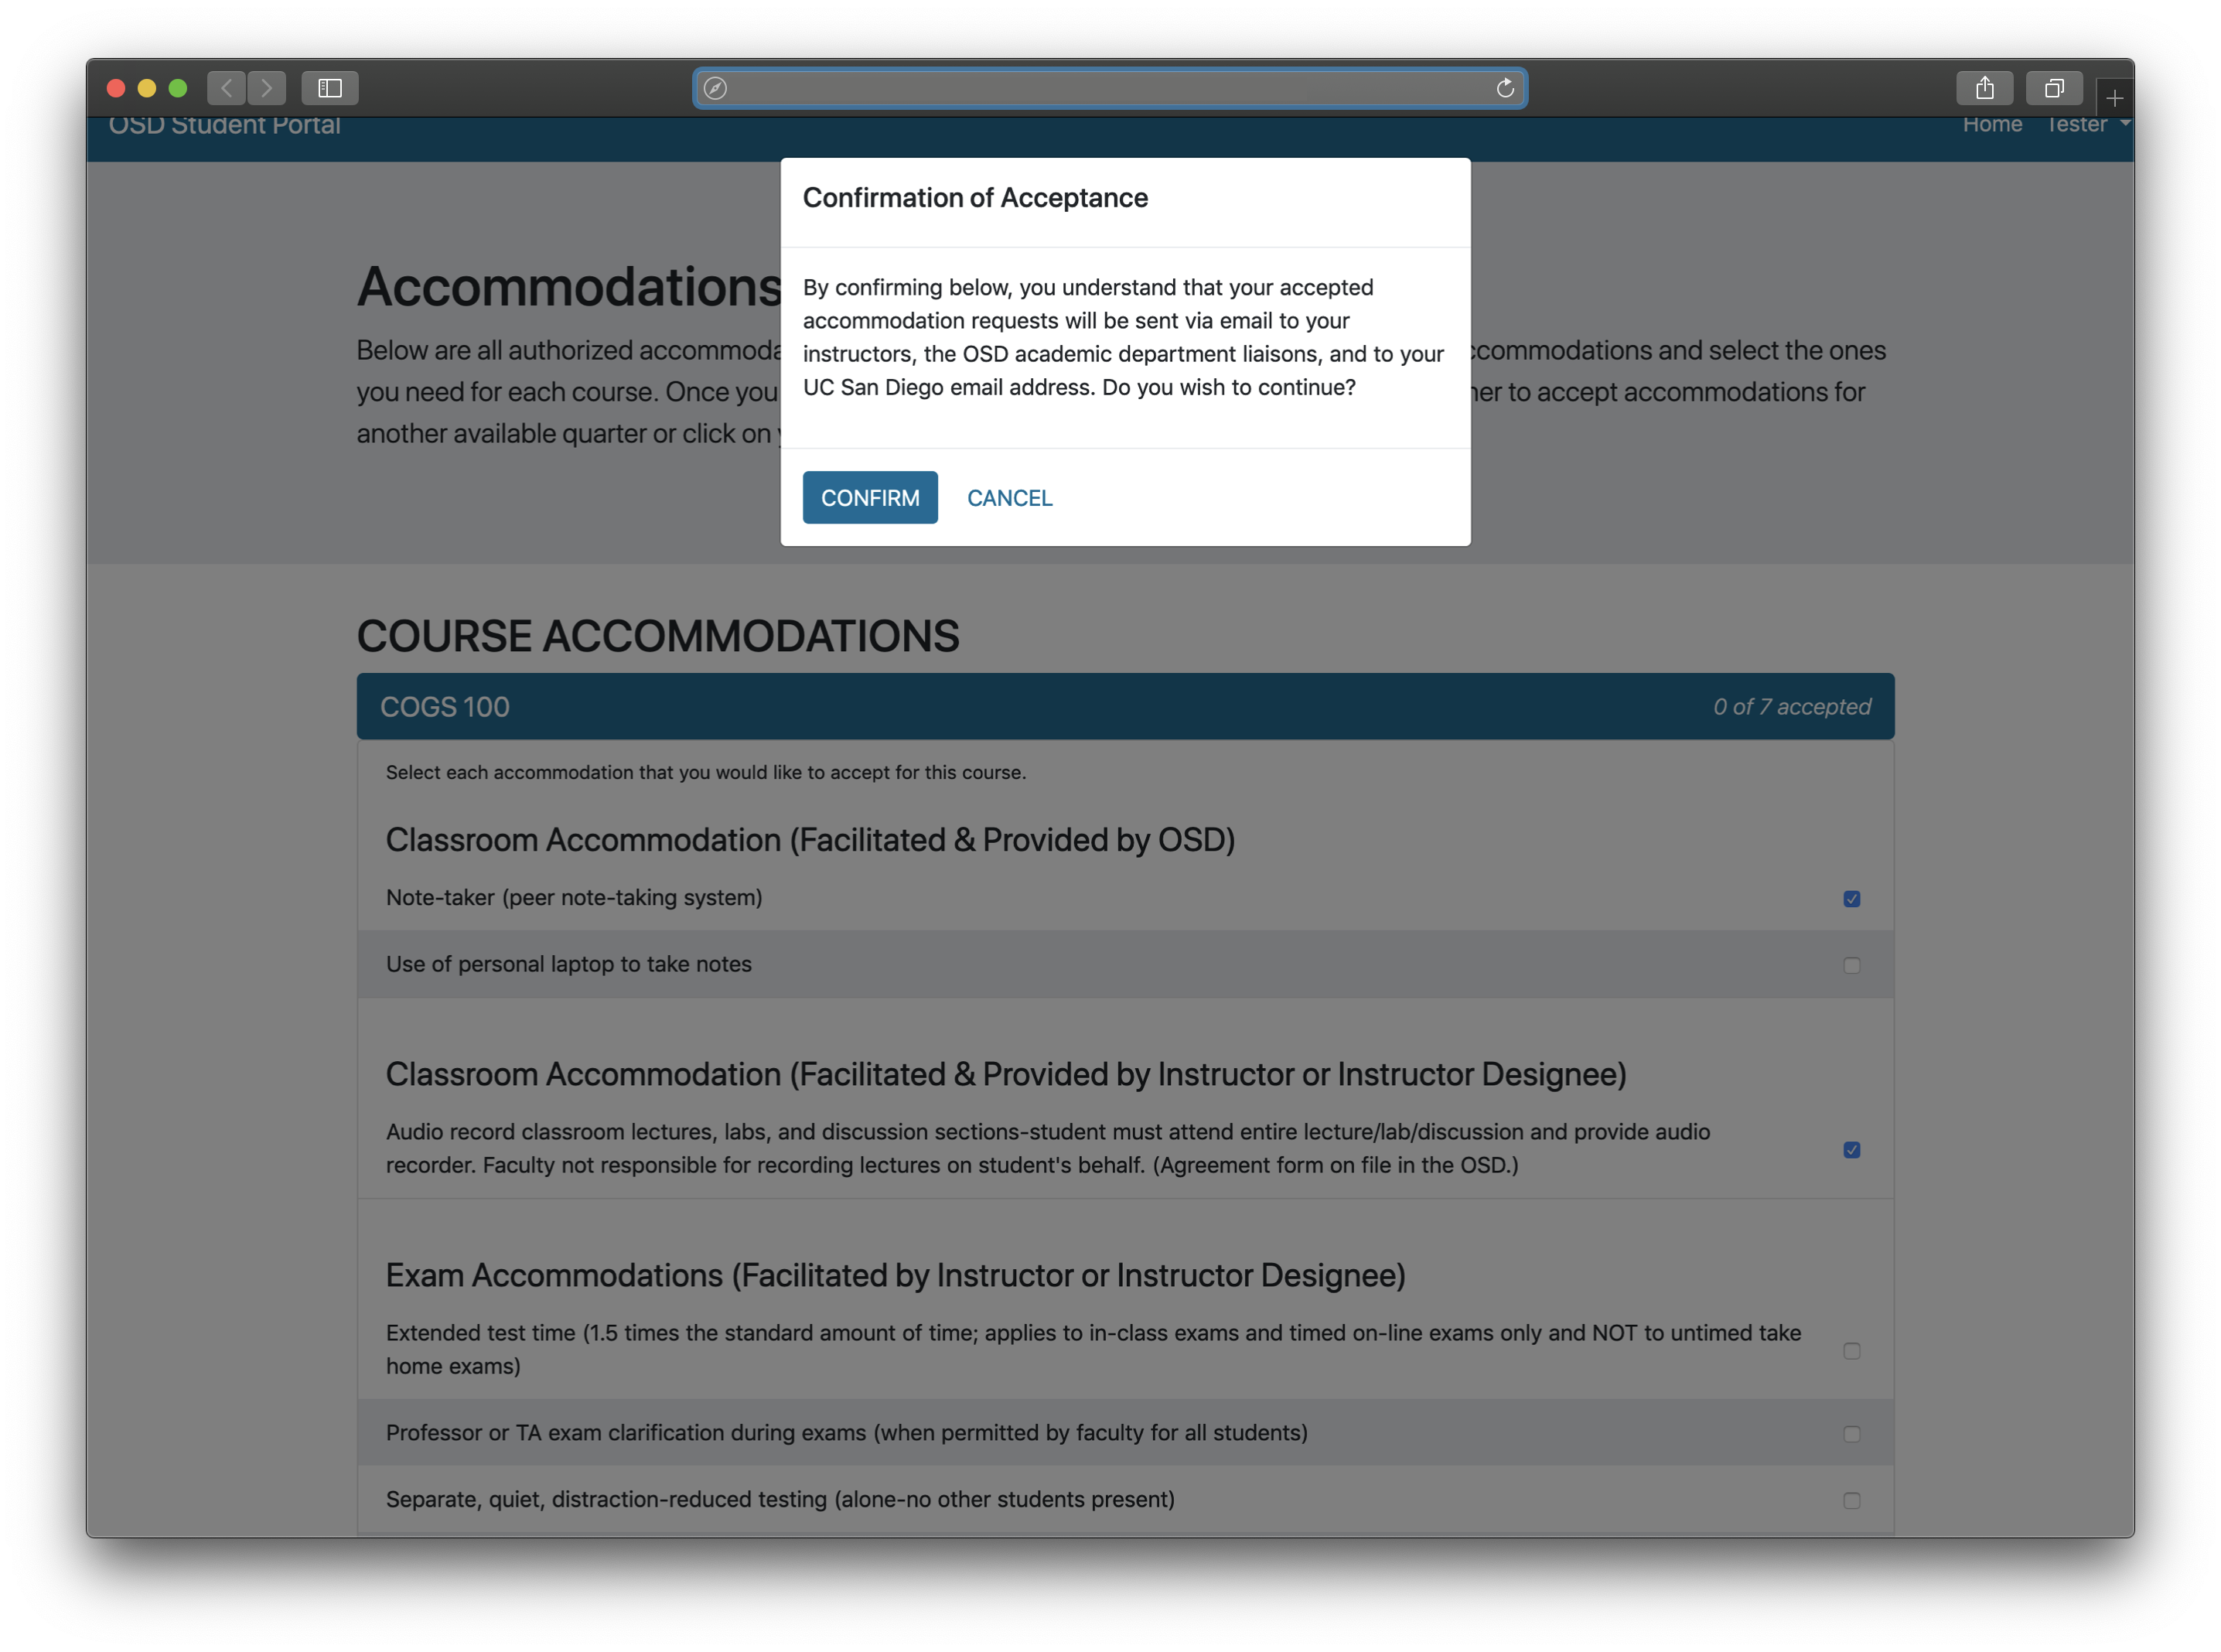 Screenshot of the dialogue box for confirming accommodations after the first day of instruction.